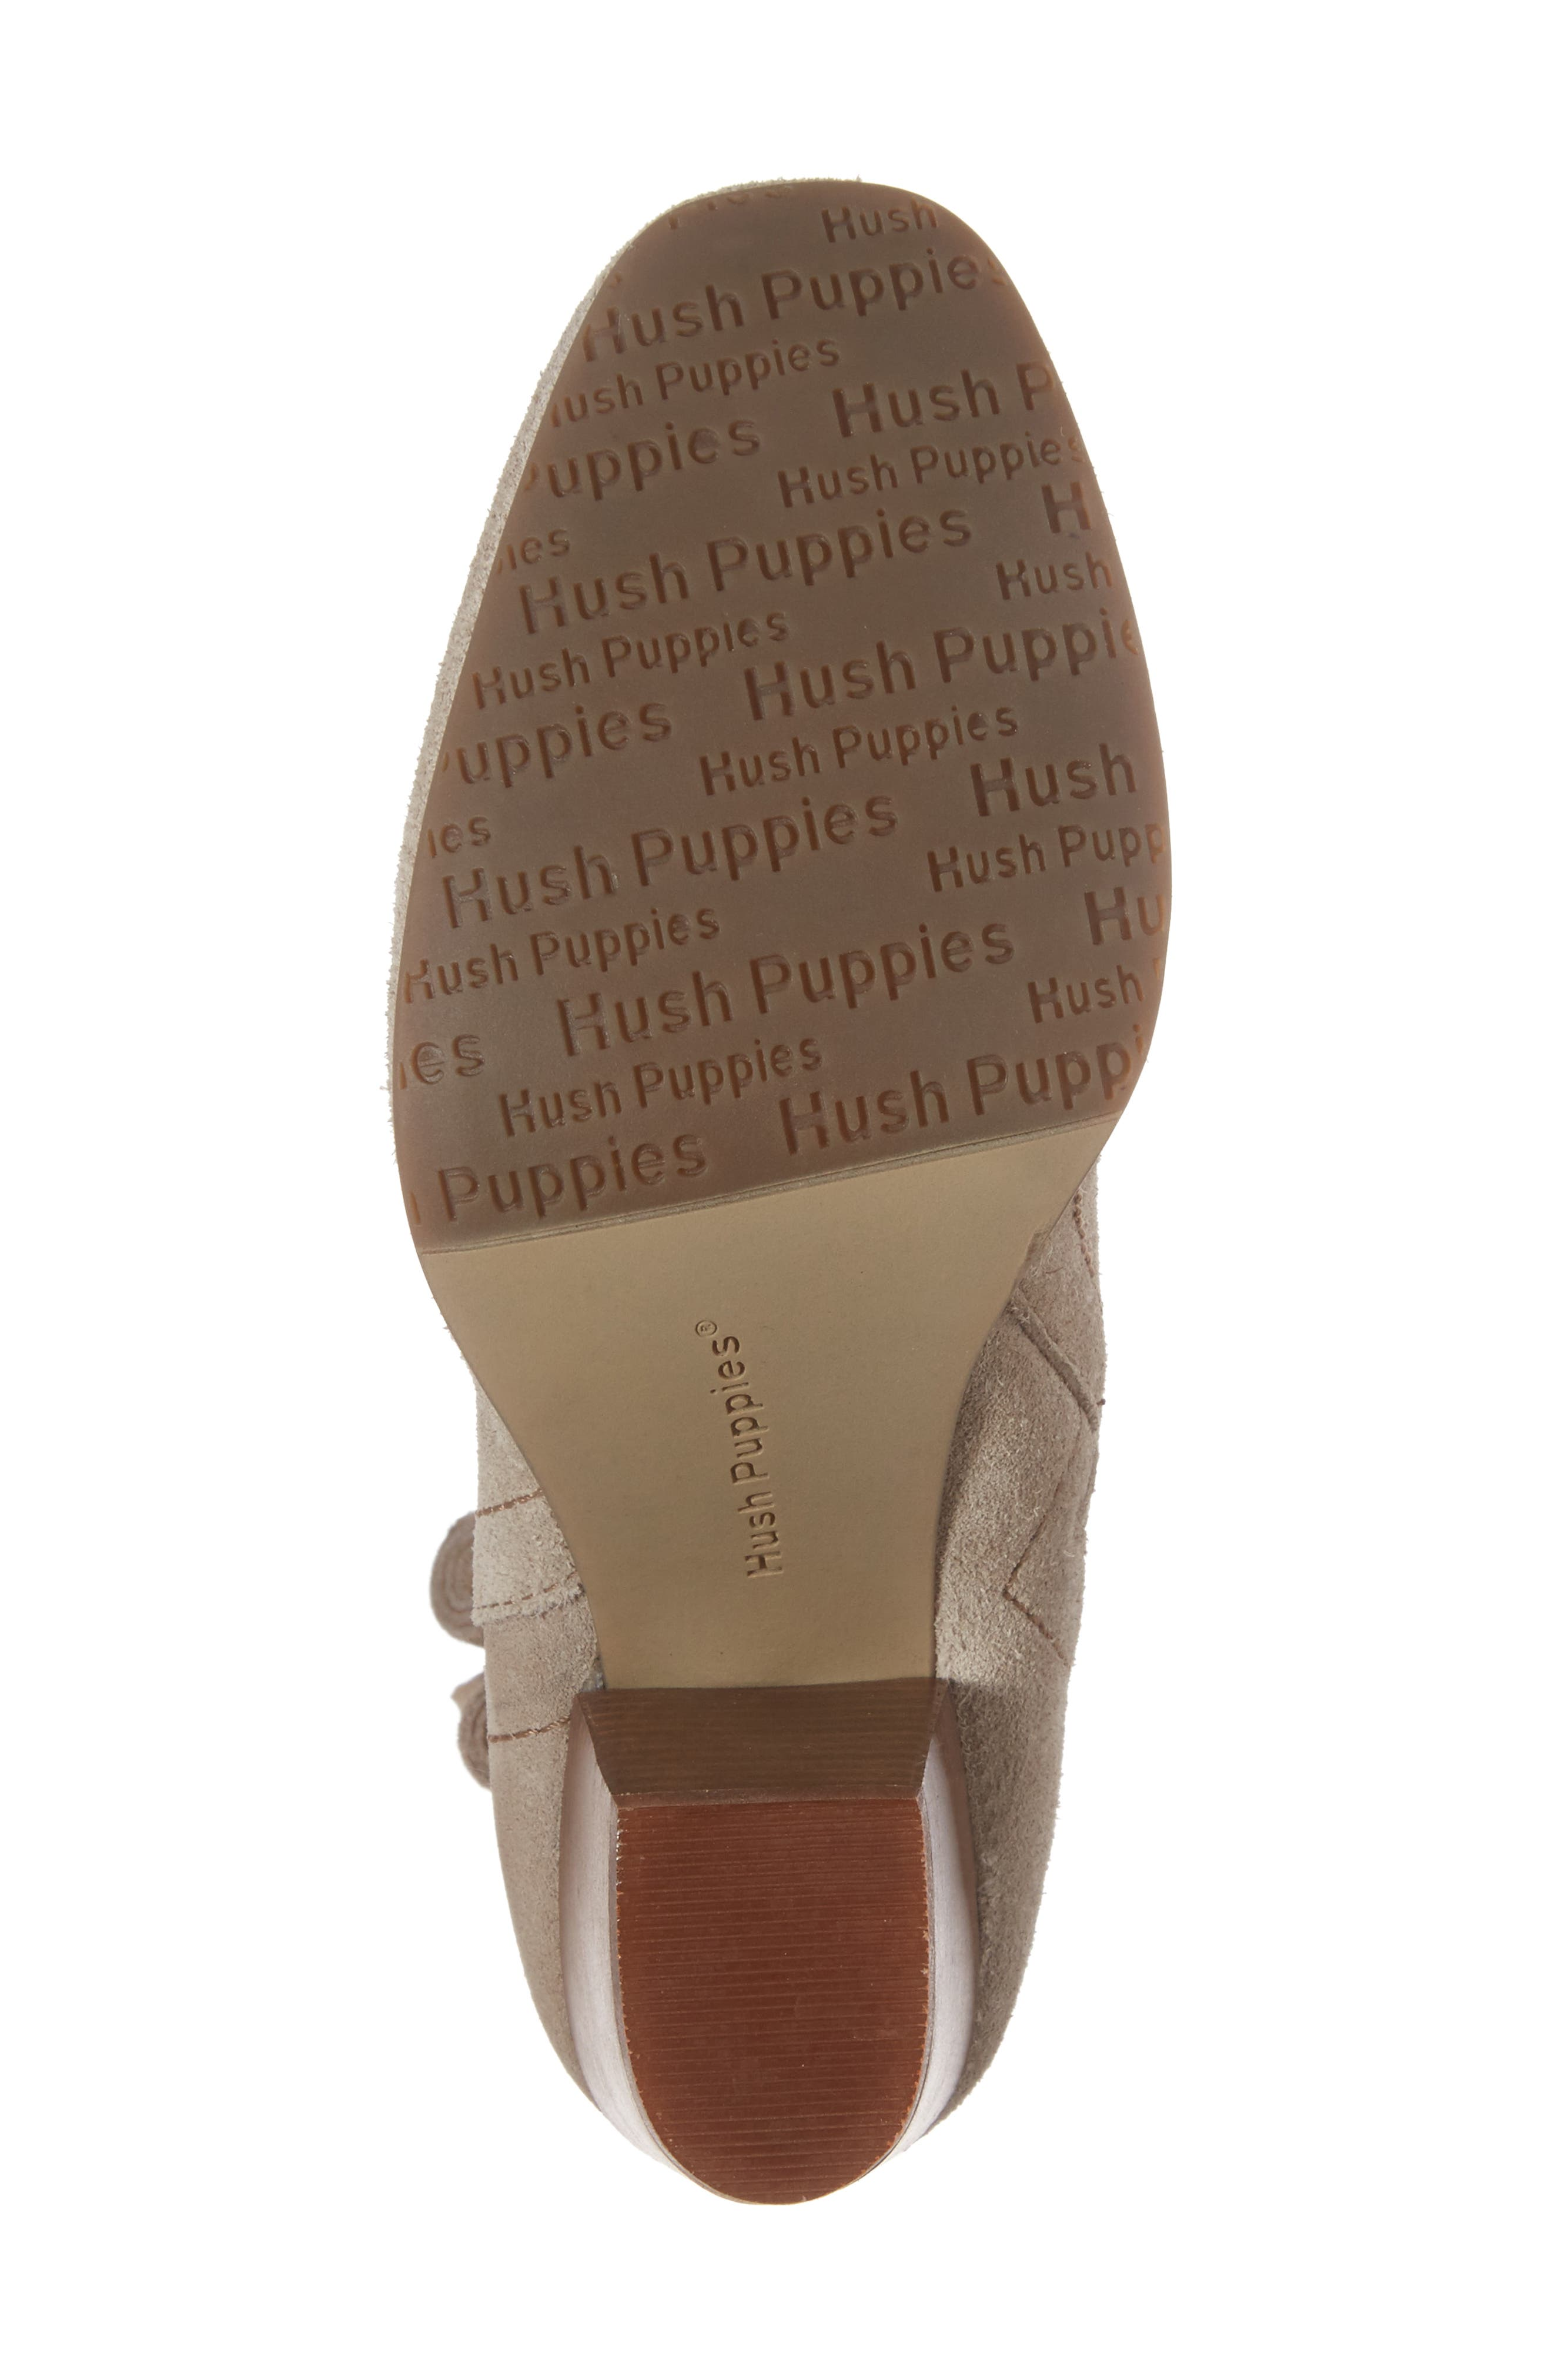 Daisee Billie Bootie,                             Alternate thumbnail 6, color,                             Taupe Suede